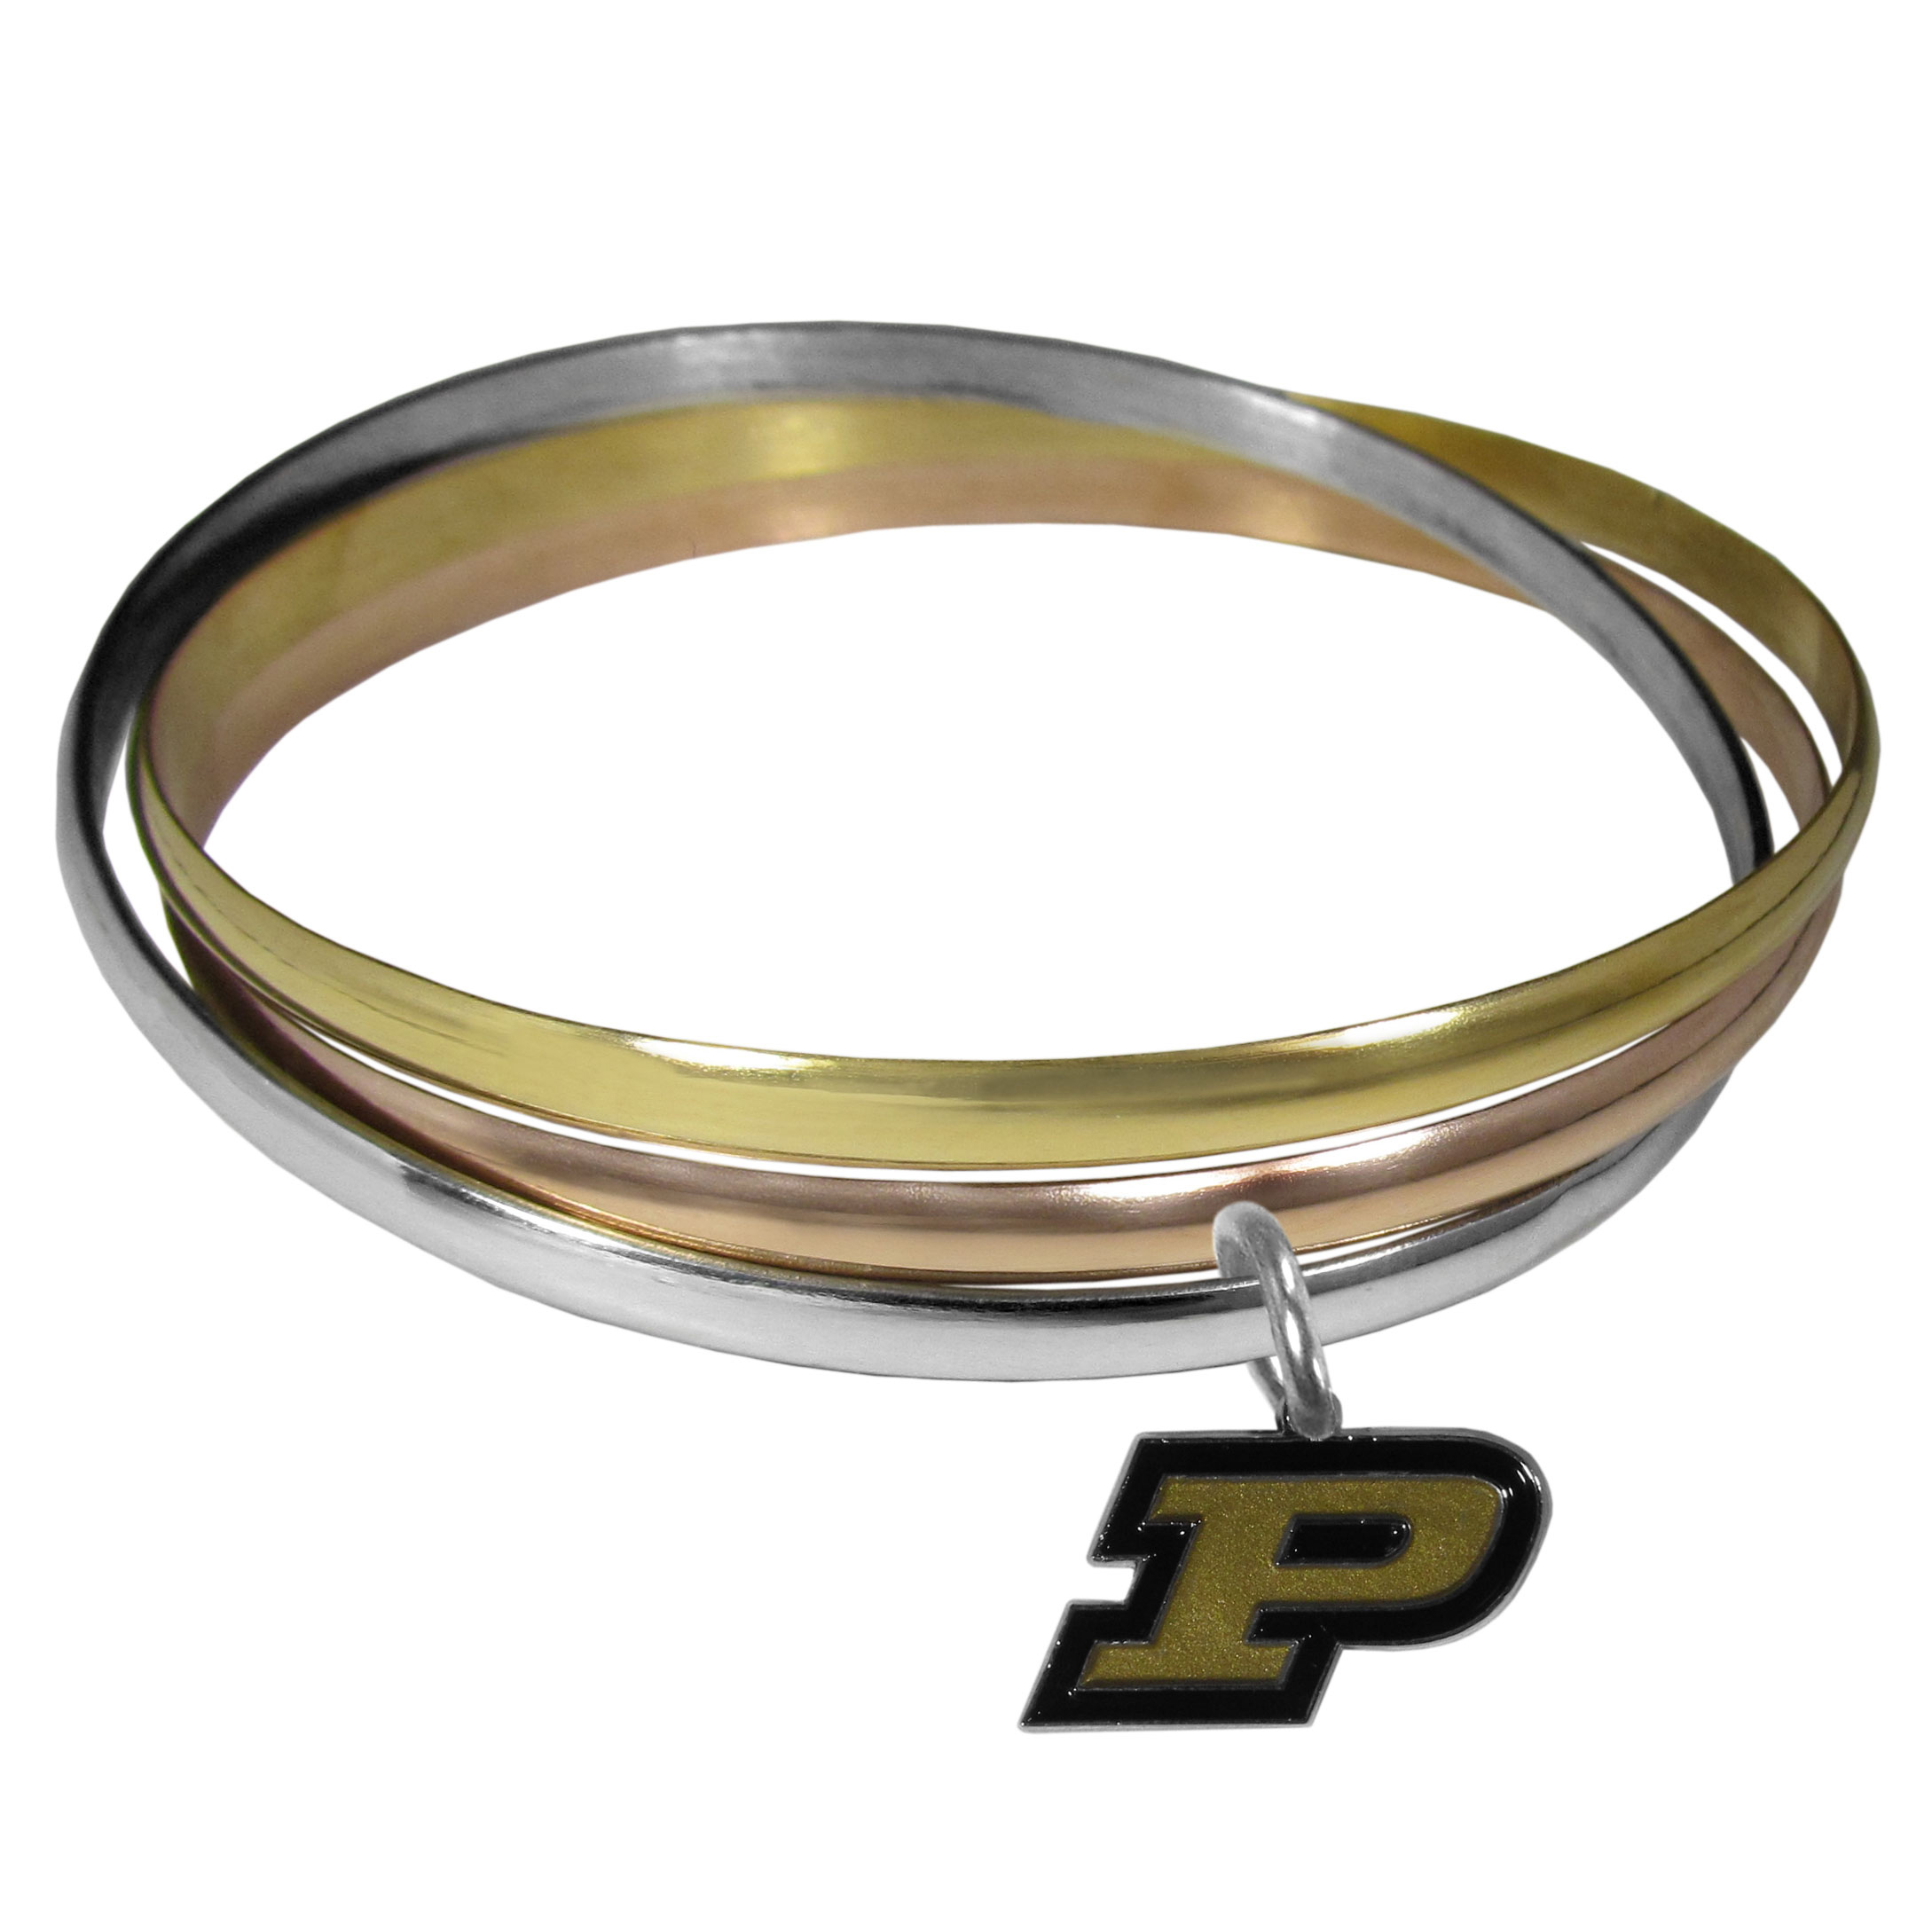 Purdue Boilermakers Tri-color Bangle Bracelet - These beautiful bangles come in a interlocking style and feature a fully cast Purdue Boilermakers charm with enameled team colors. The bracelet has a silver toned bangle, gold tone bangle and brass toned bangle.